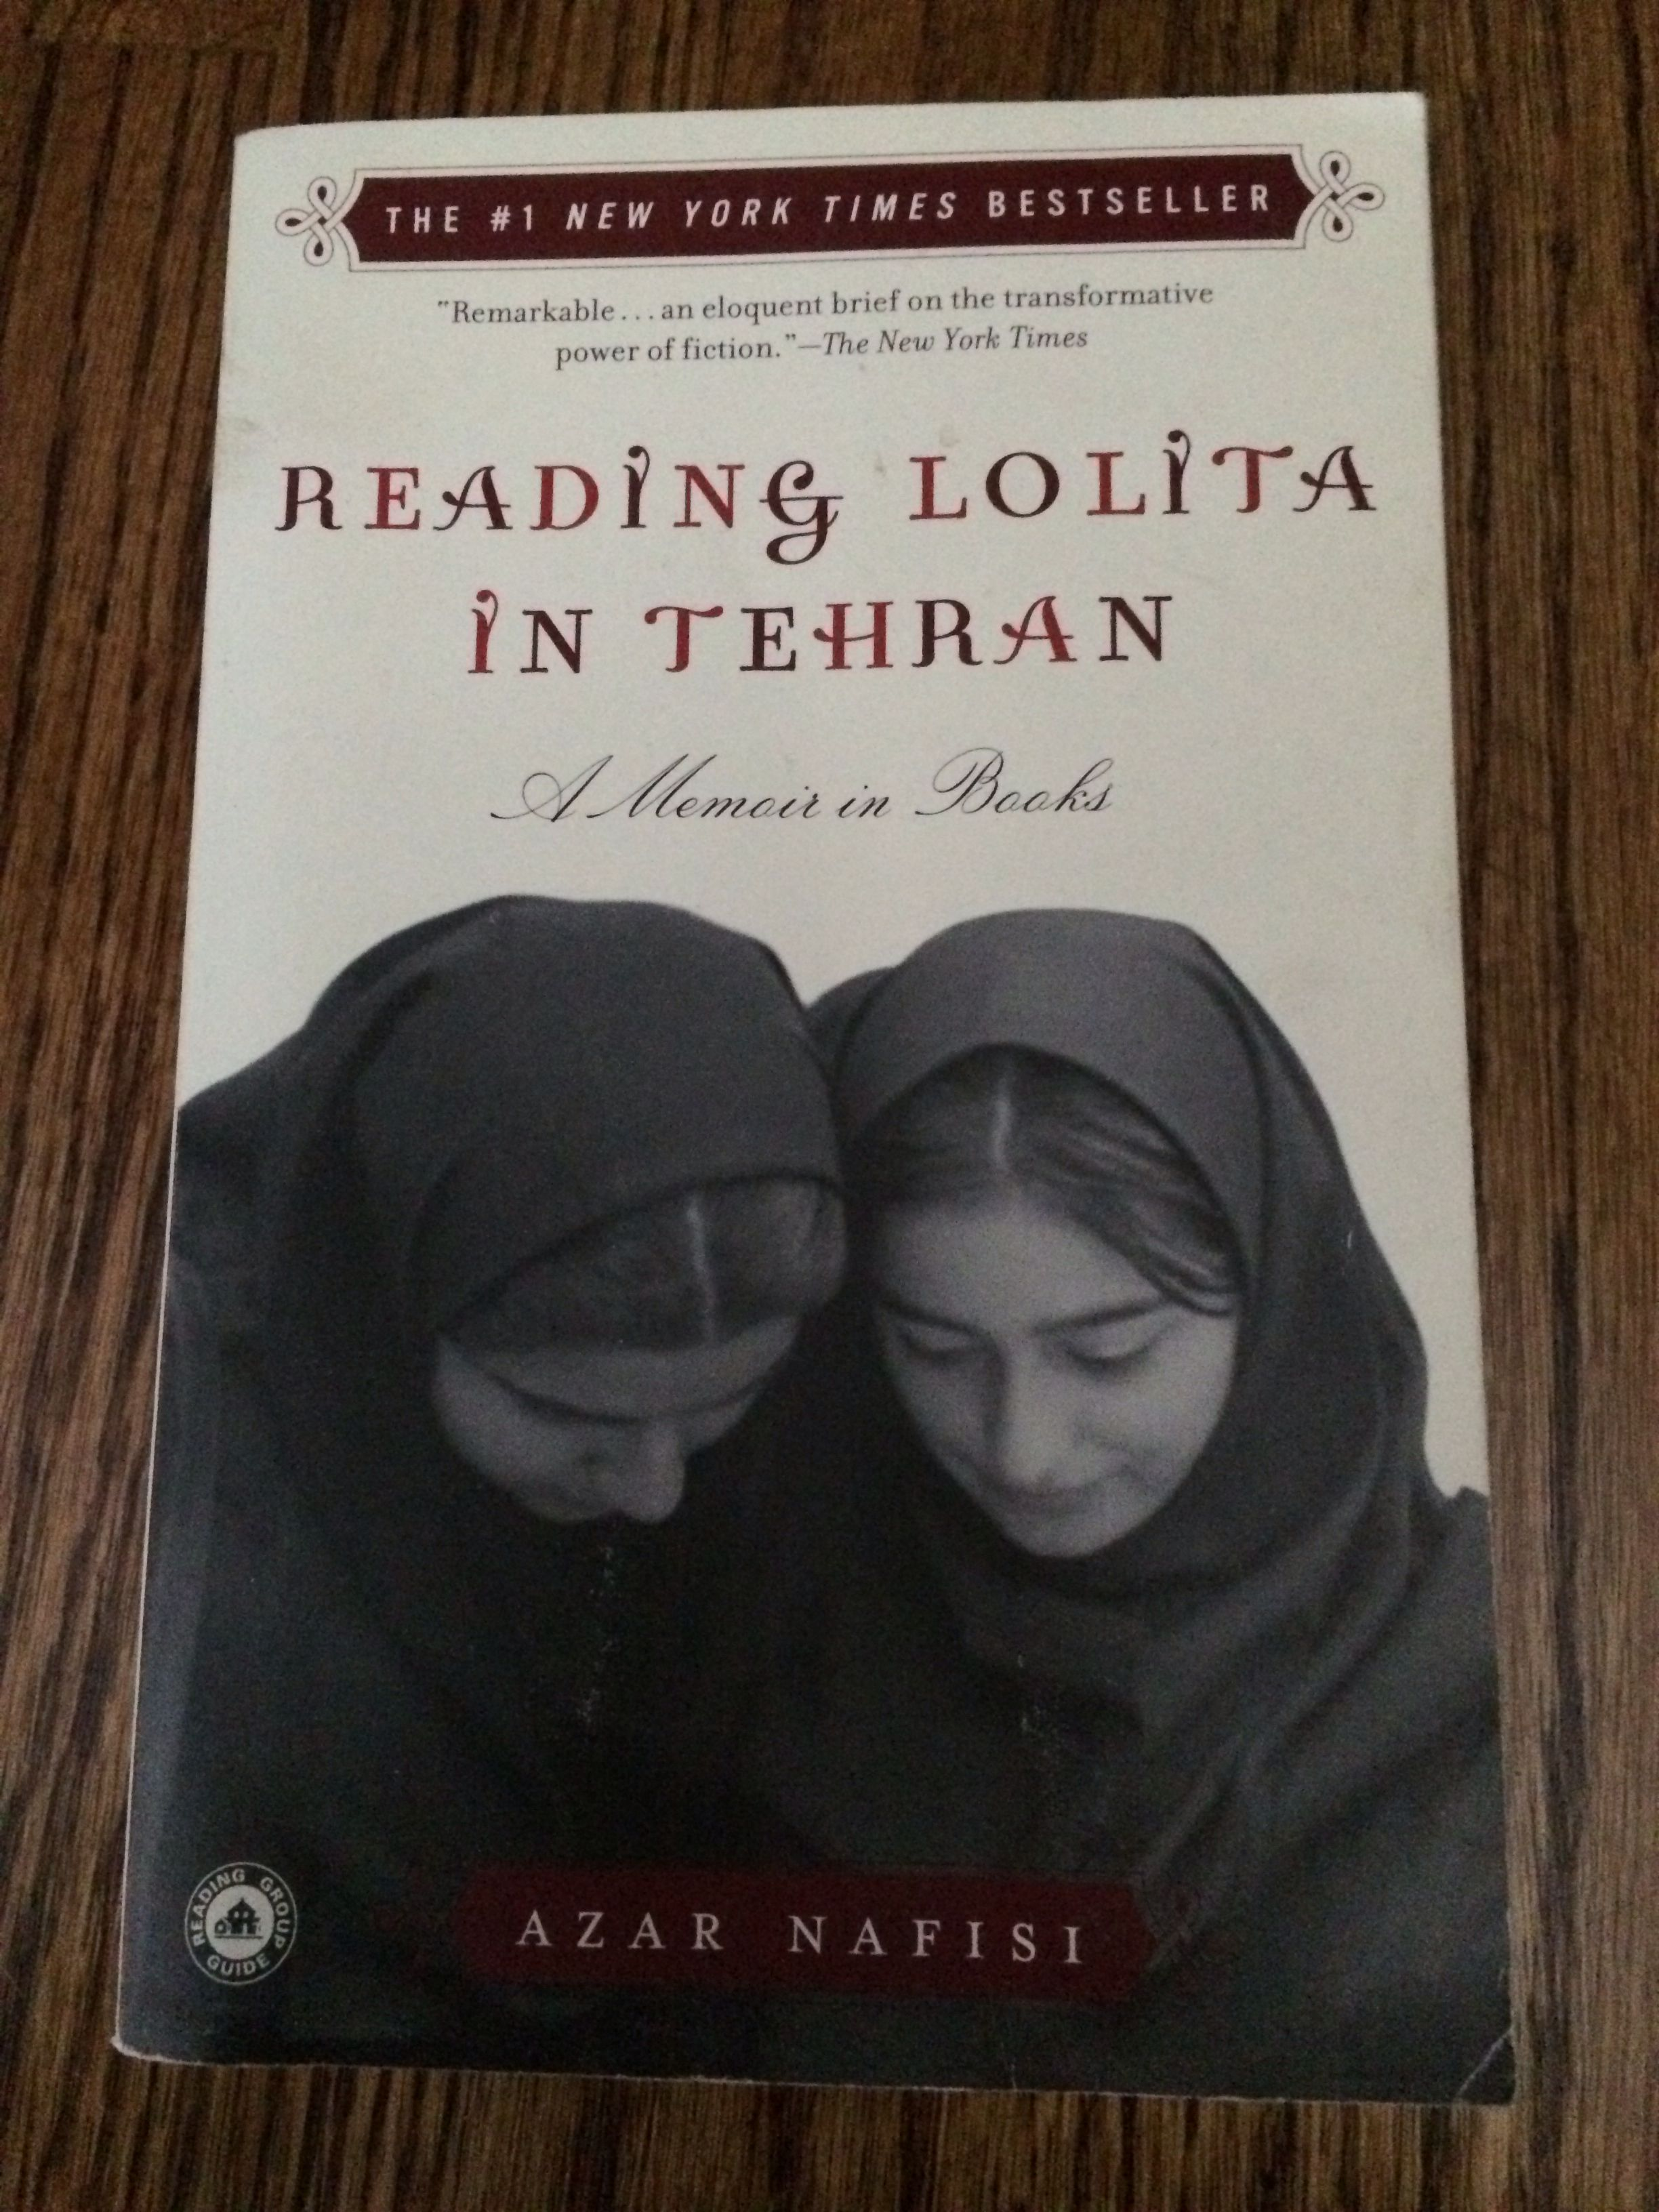 reading lolita in tehran themes Read free book excerpt from reading lolita in tehran by azar nafisi, page 3 of 4.